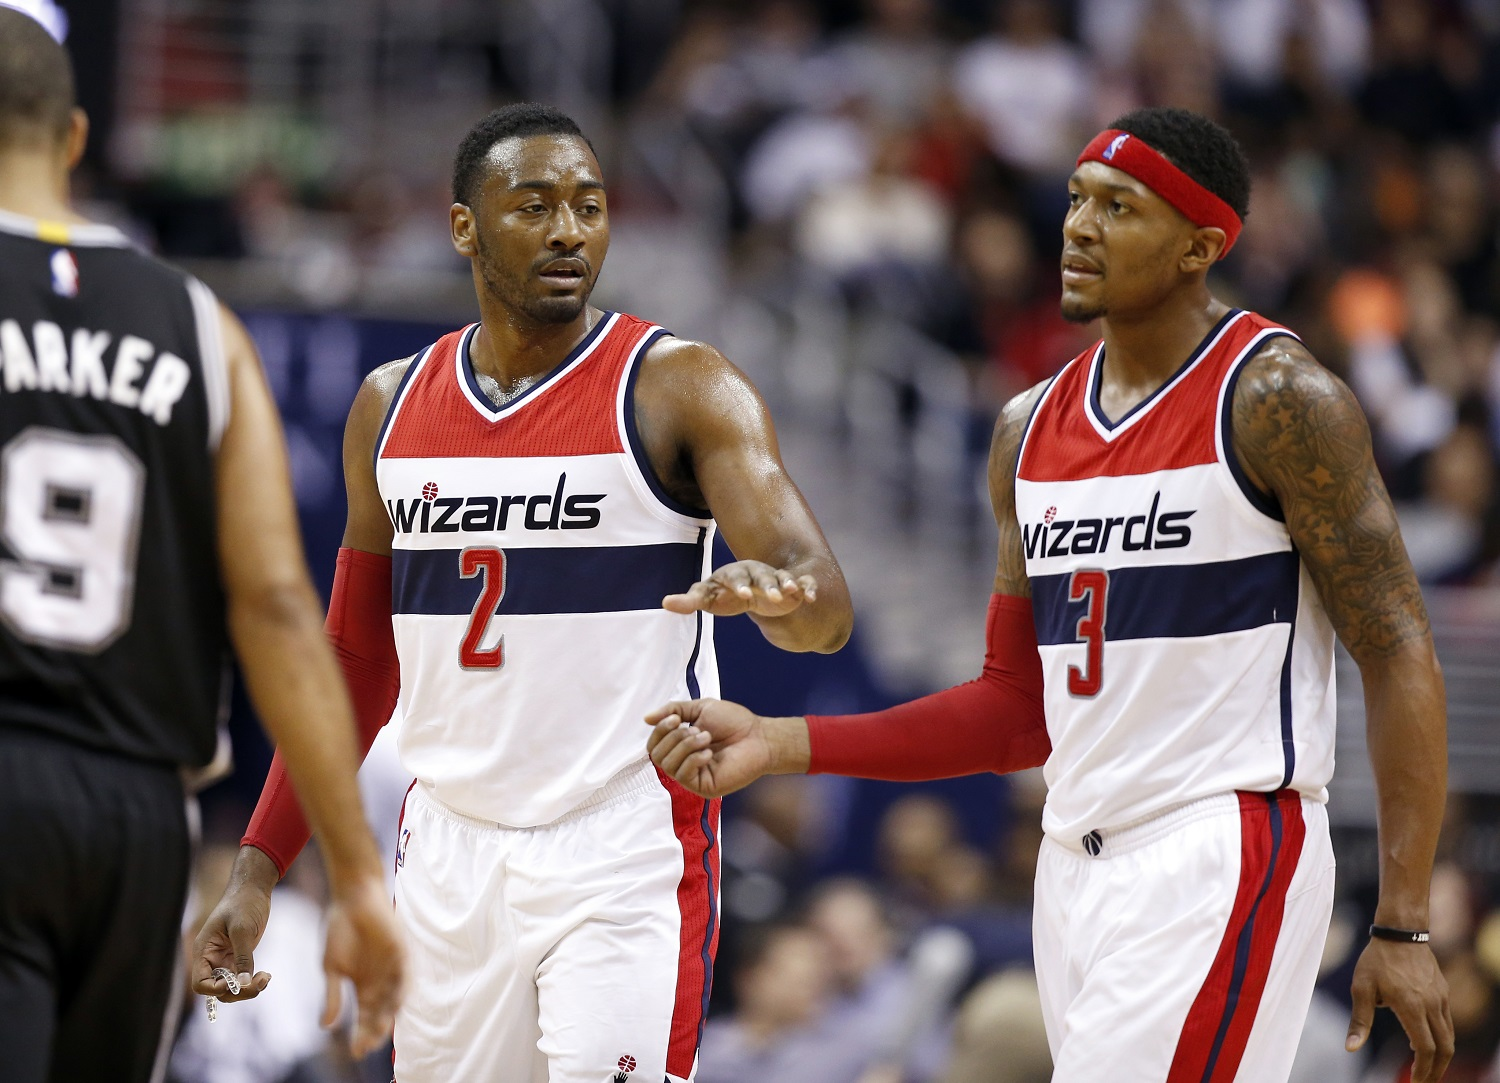 Early returns promising for Wizards' Beal